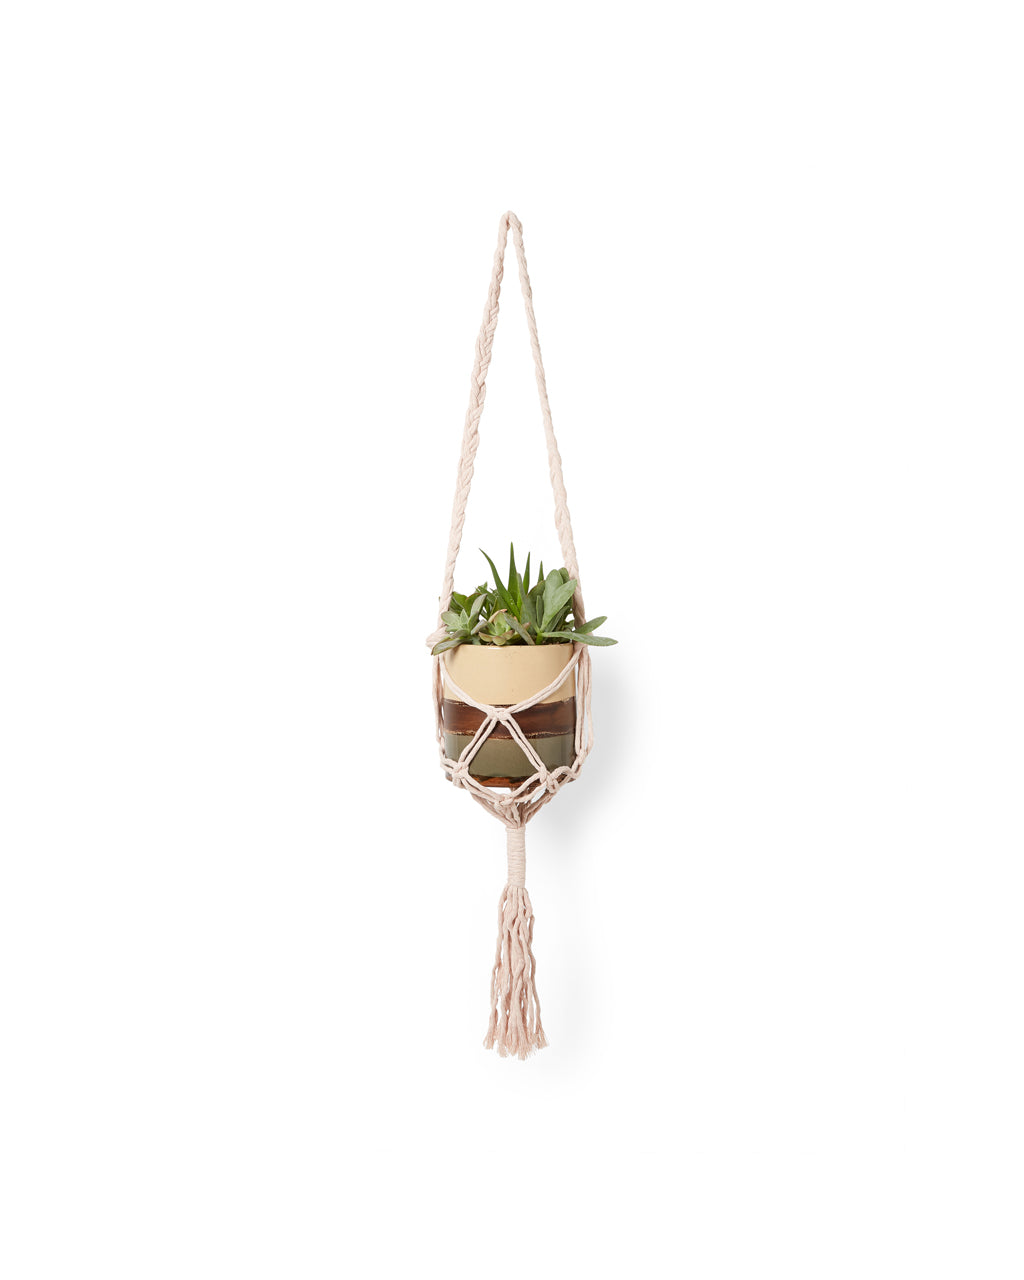 light pink yarn tote shown as plant hanger